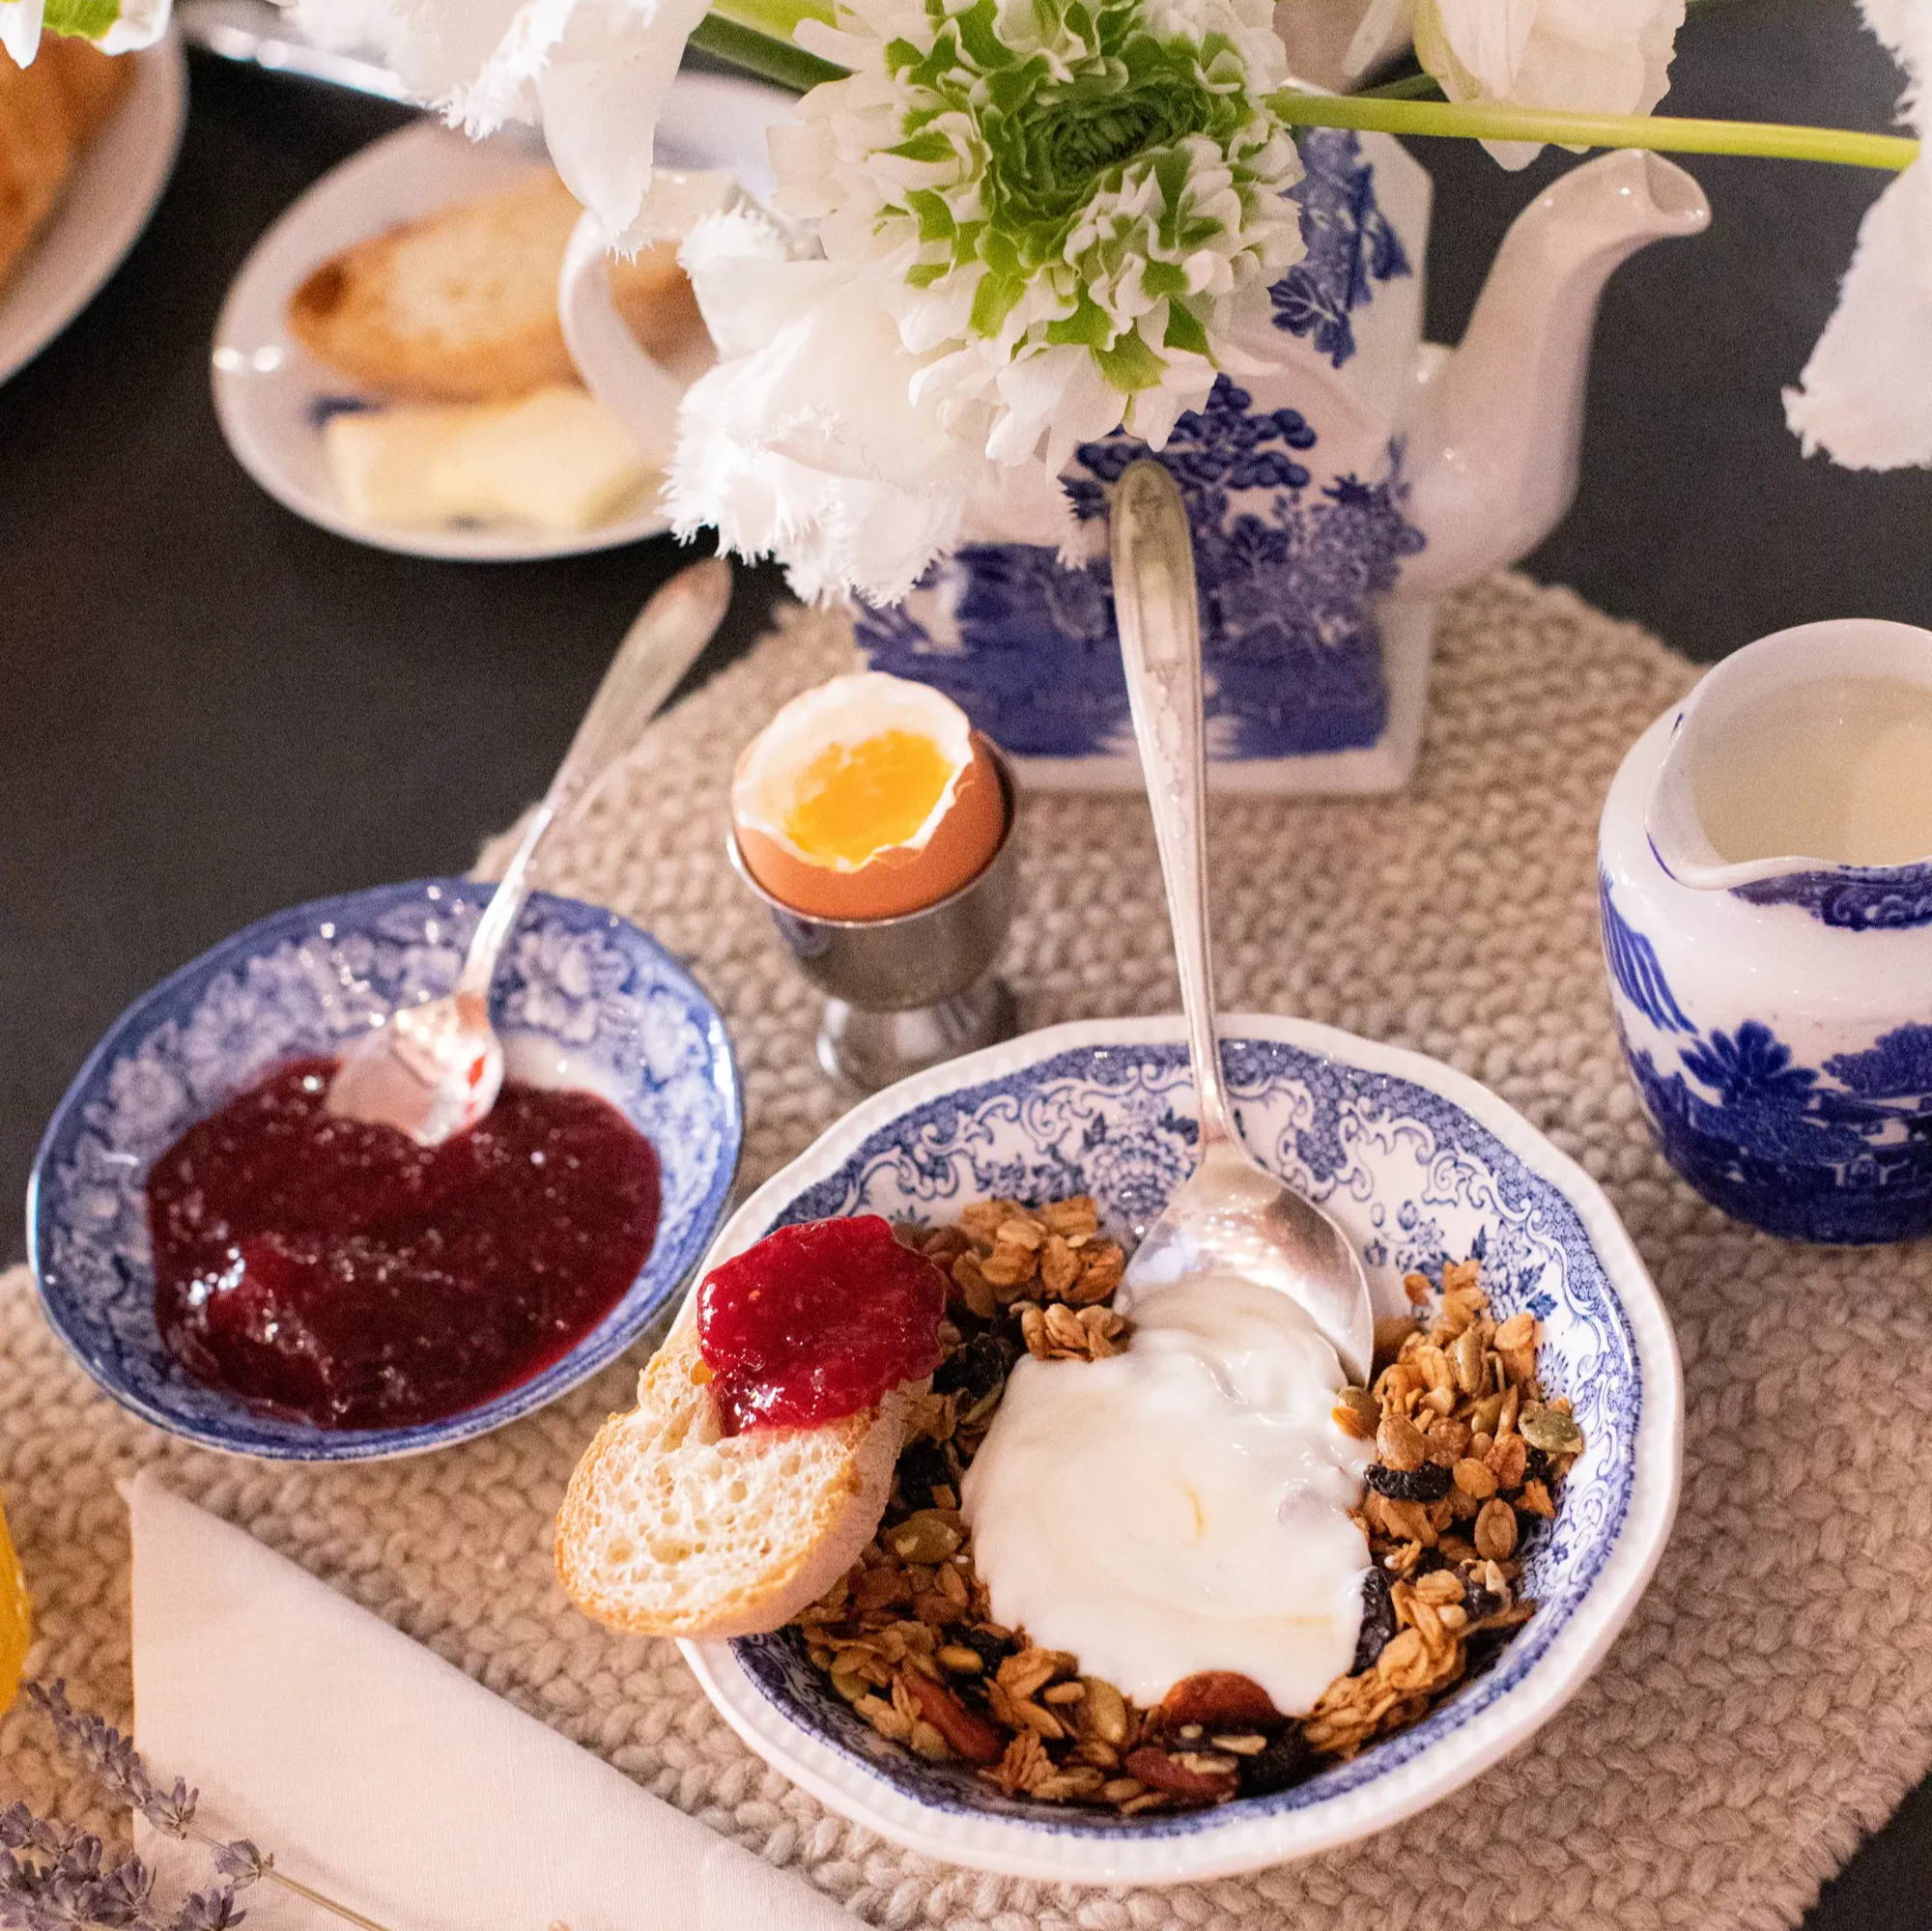 cereal bowl and berry bowl for blue and white breakfast scene